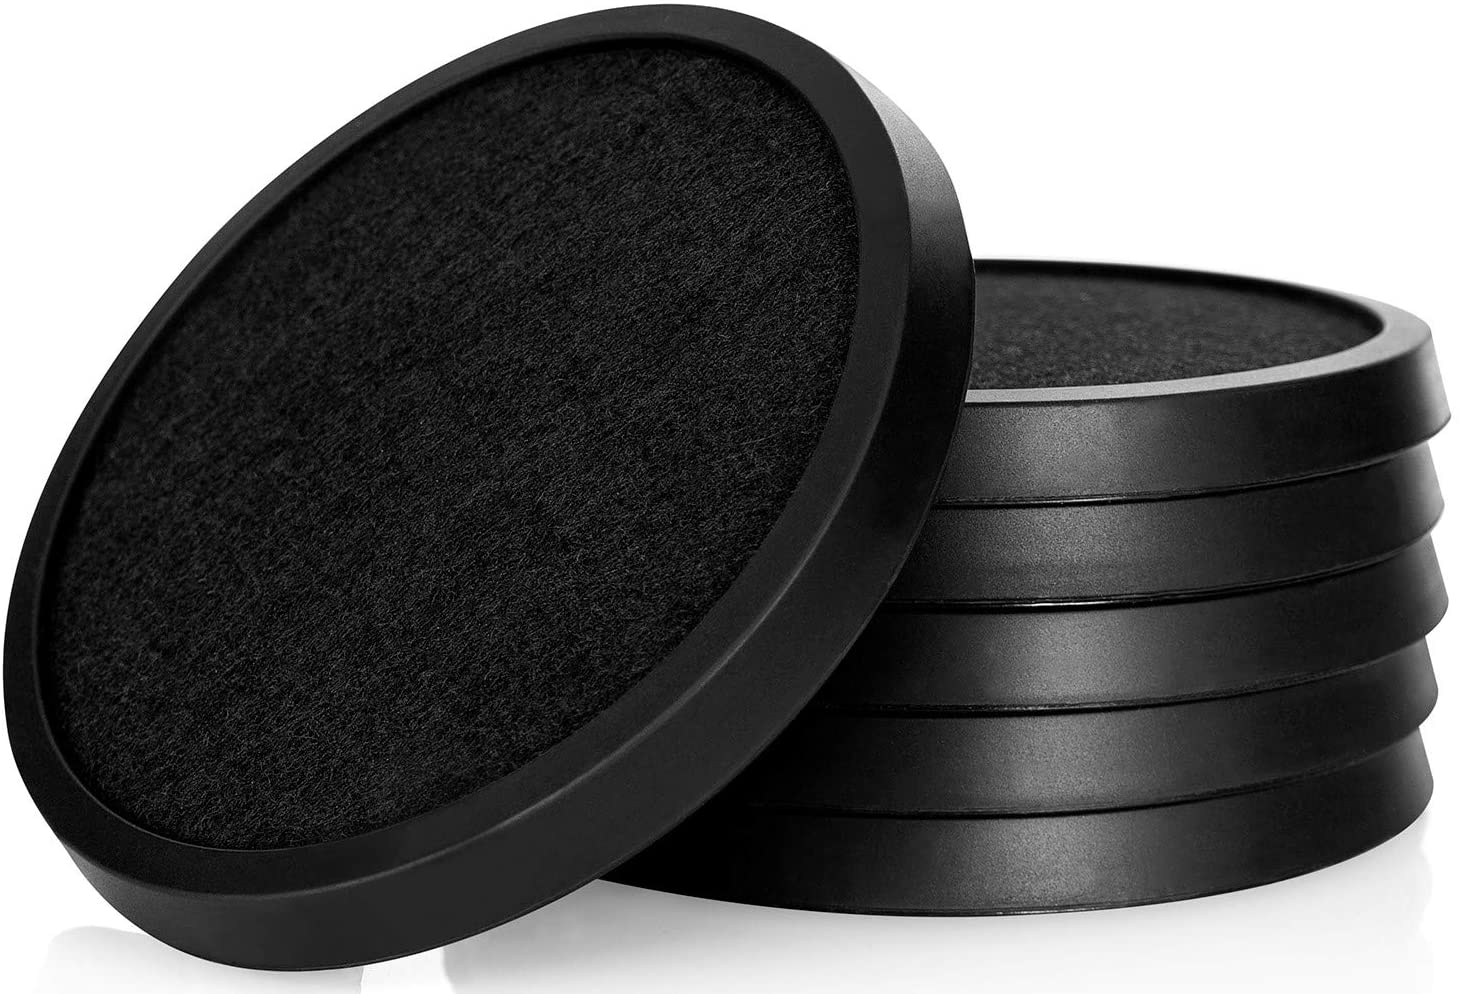 Comfortena Silicone Absorbent Coasters for Drinks | Protect Furniture from Water or Condensation Damage | Set of 6 Drink Coasters with Removable Felt Pad| Black